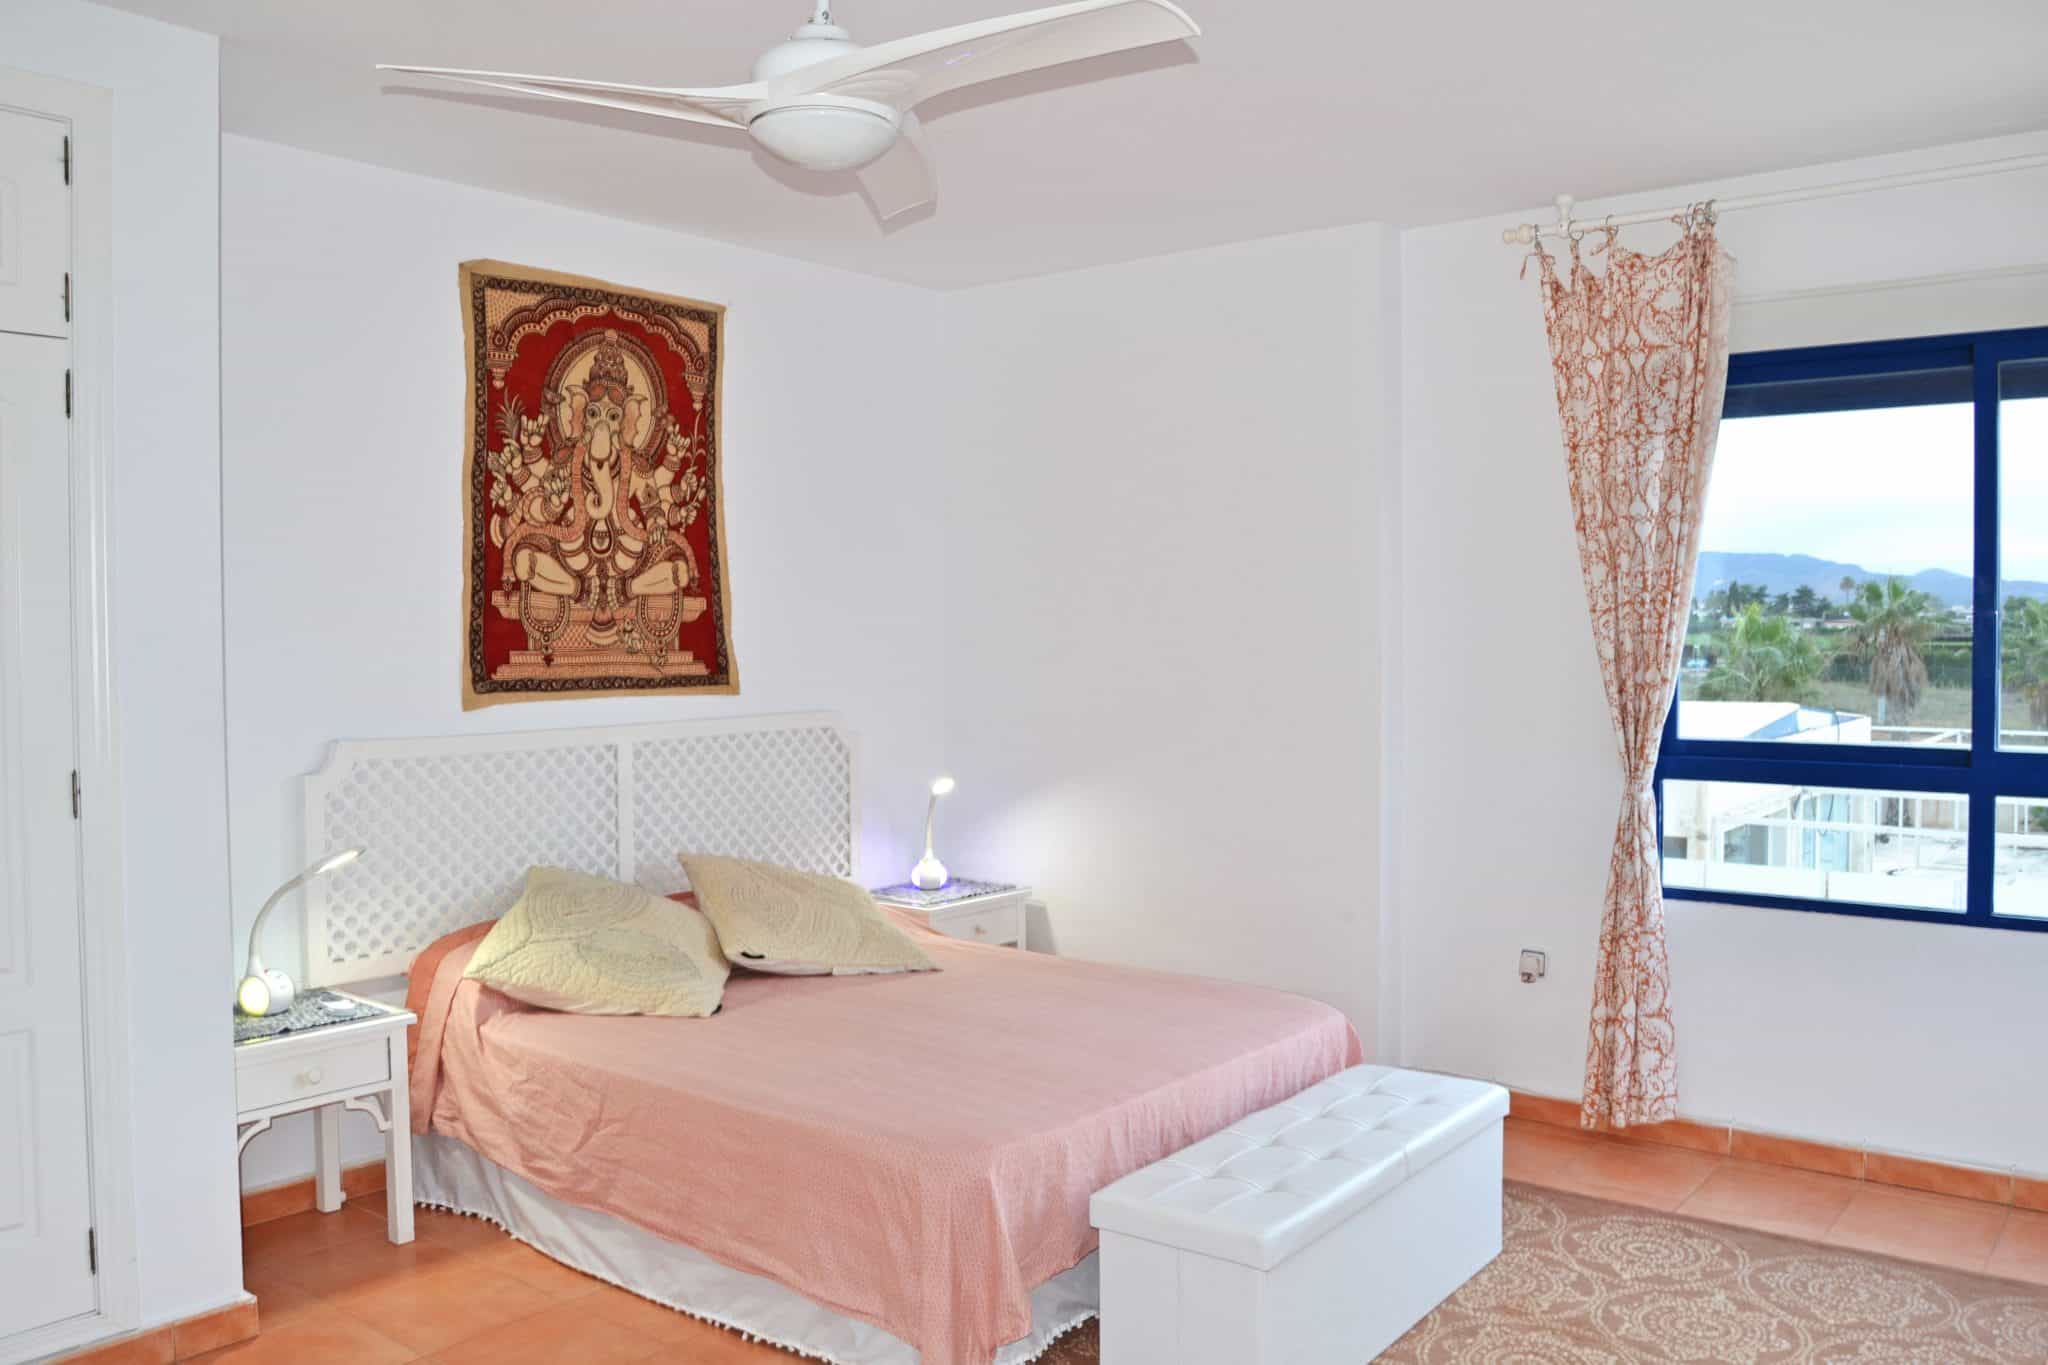 Very spacious master bedroom with views